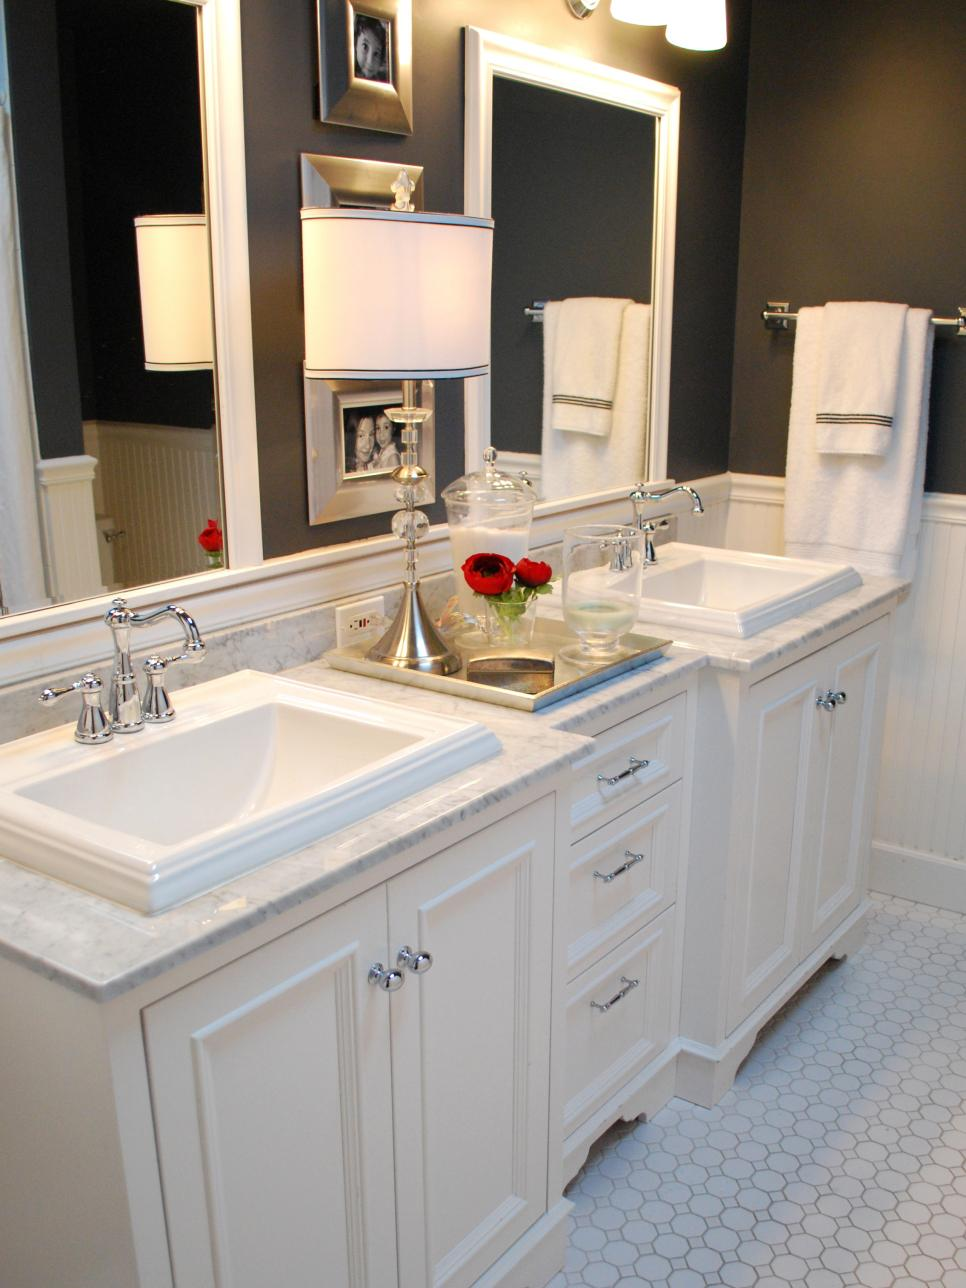 Black and white bathroom designs hgtv for Bathroom design ideas black and white